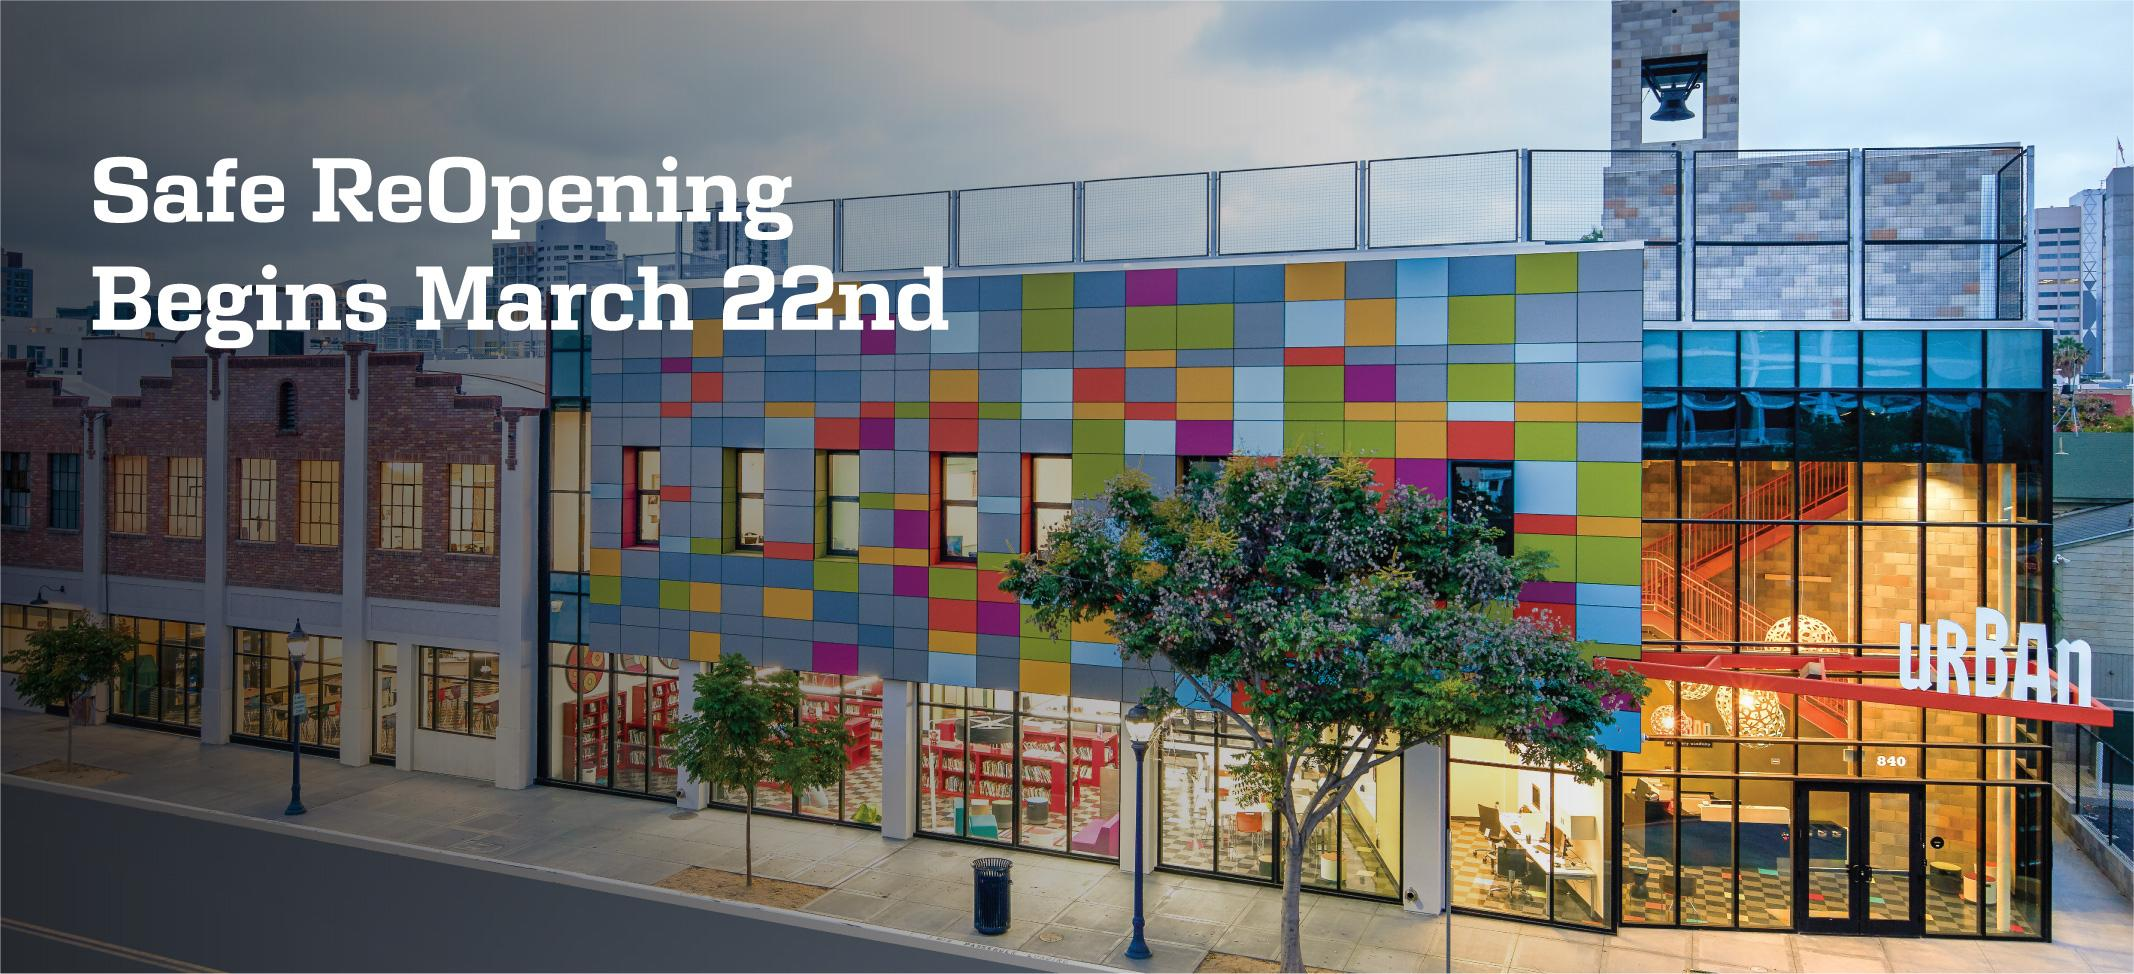 Safe ReOpening Begins March 22nd at Urban Discovery Schools